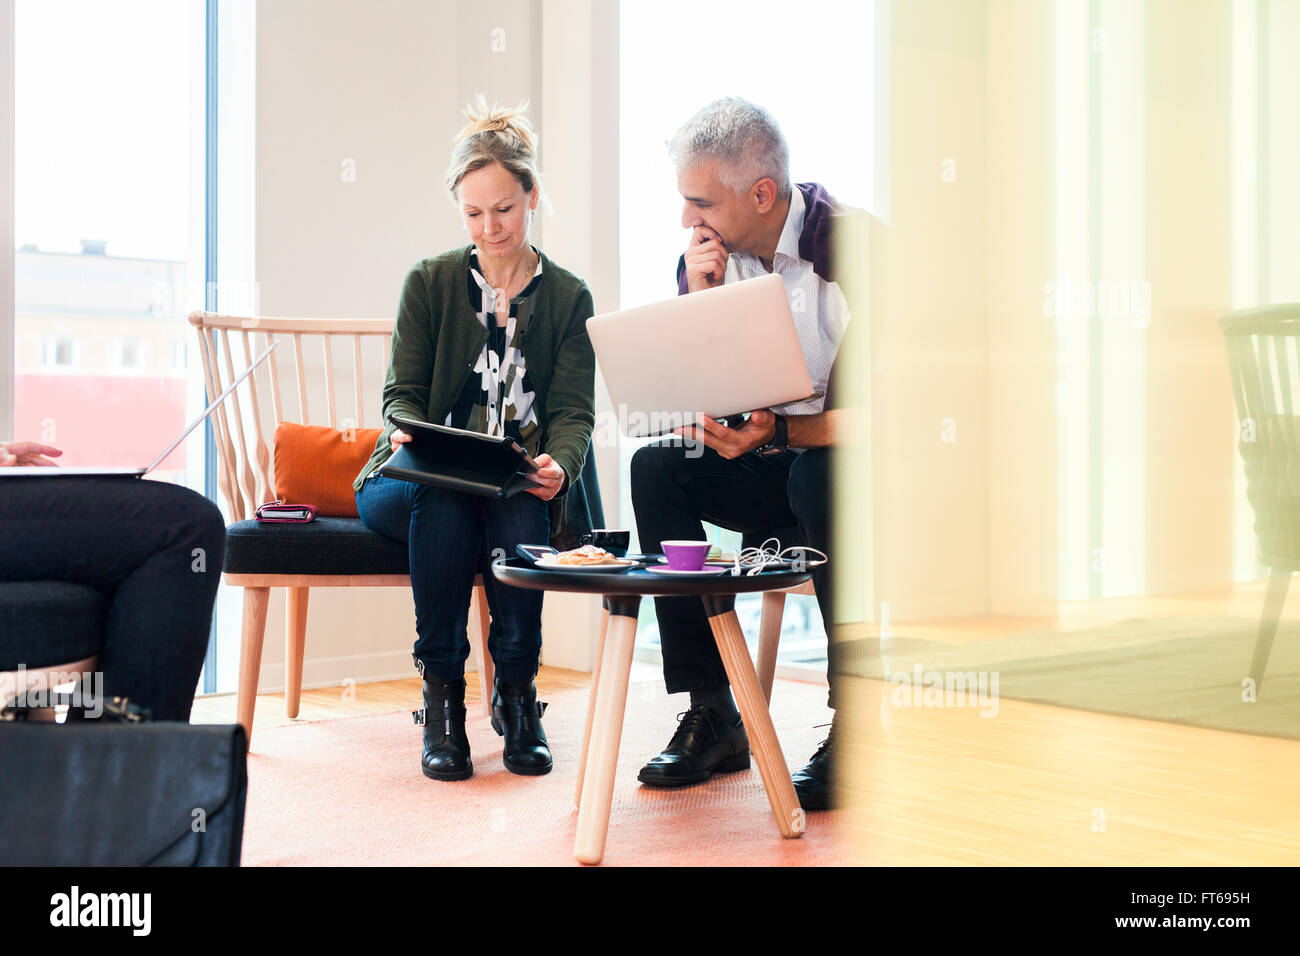 Business people using technologies at hotel lobby - Stock Image